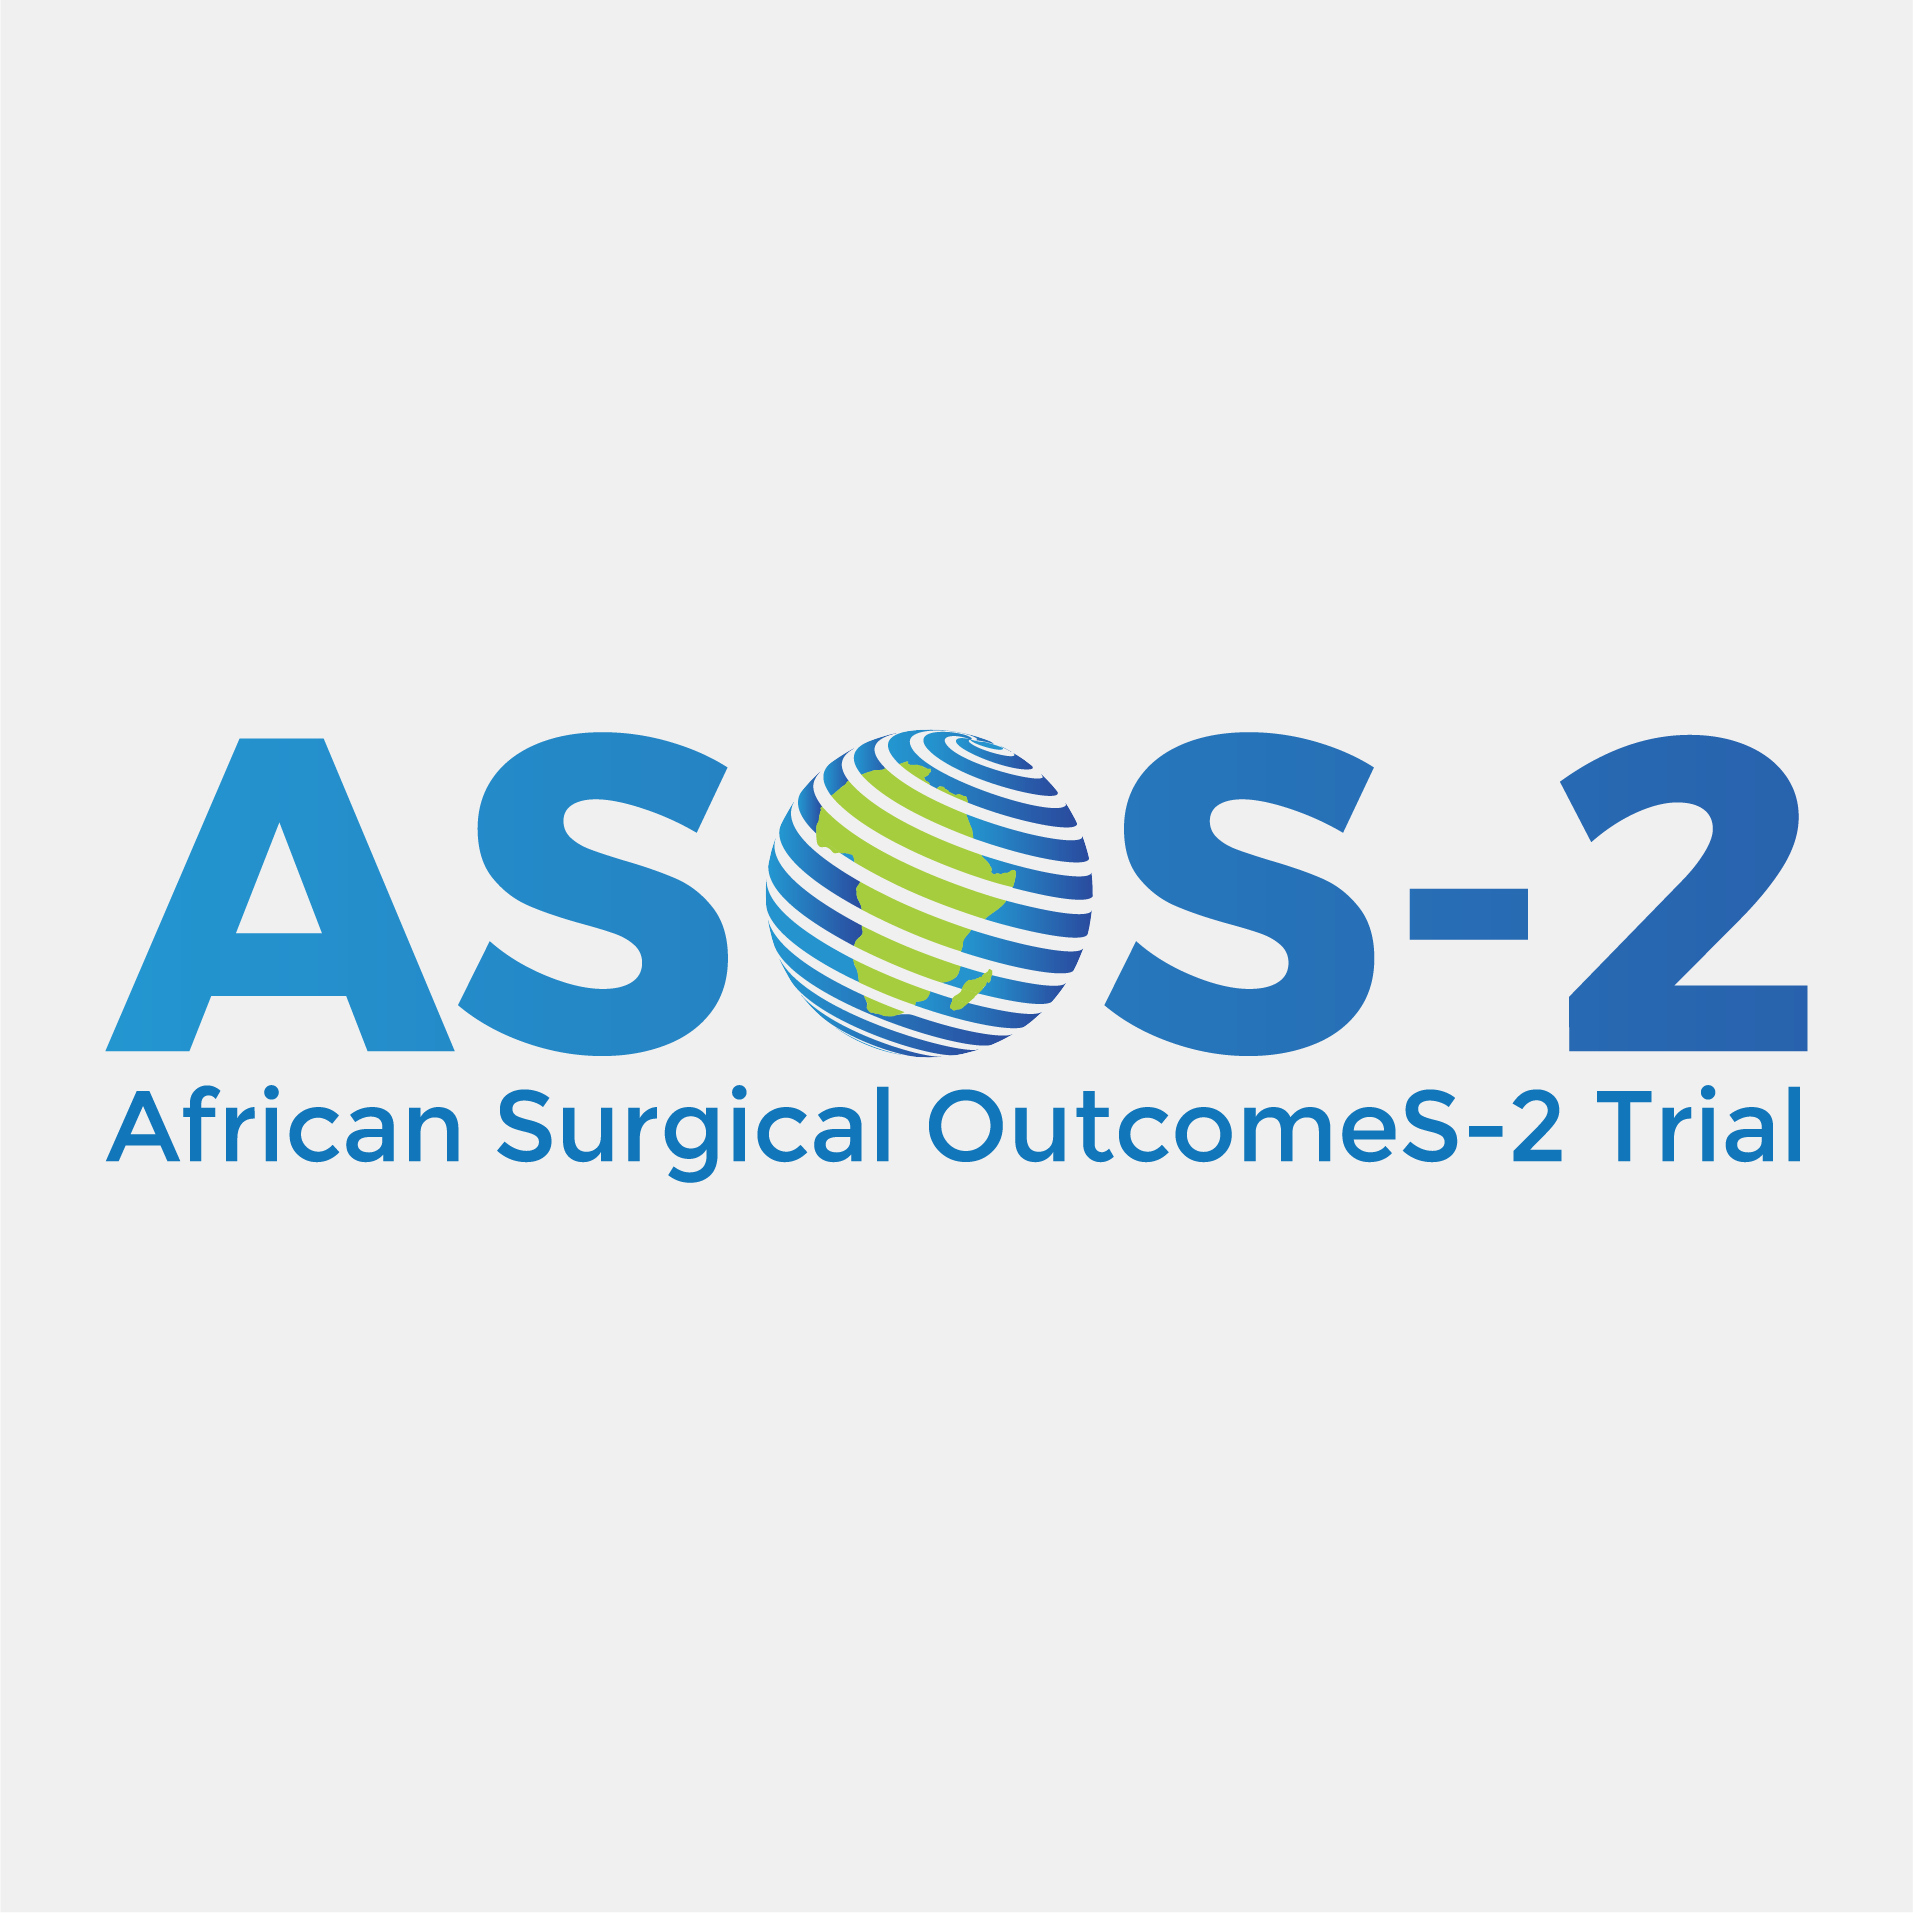 ASOS-2 Registration Now Open